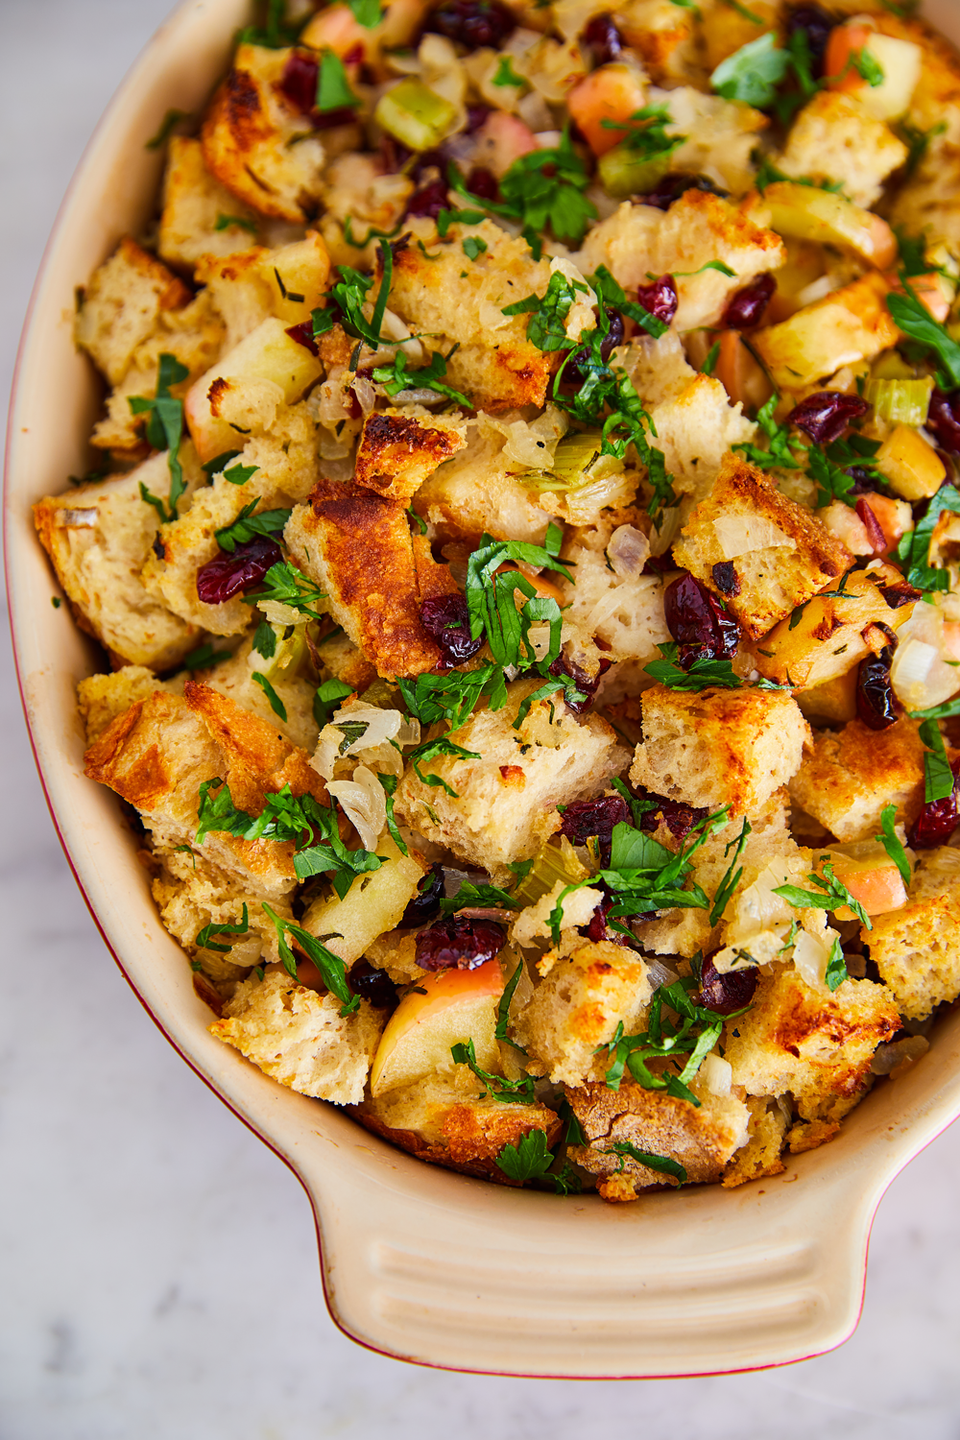 "<p>You don't need sausage to make a stuffing everyone will love. </p><p>Get the recipe from <a href=""https://www.delish.com/holiday-recipes/thanksgiving/a22628293/easy-cranberry-stuffing-recipe/"" rel=""nofollow noopener"" target=""_blank"" data-ylk=""slk:Delish"" class=""link rapid-noclick-resp"">Delish</a>.</p>"